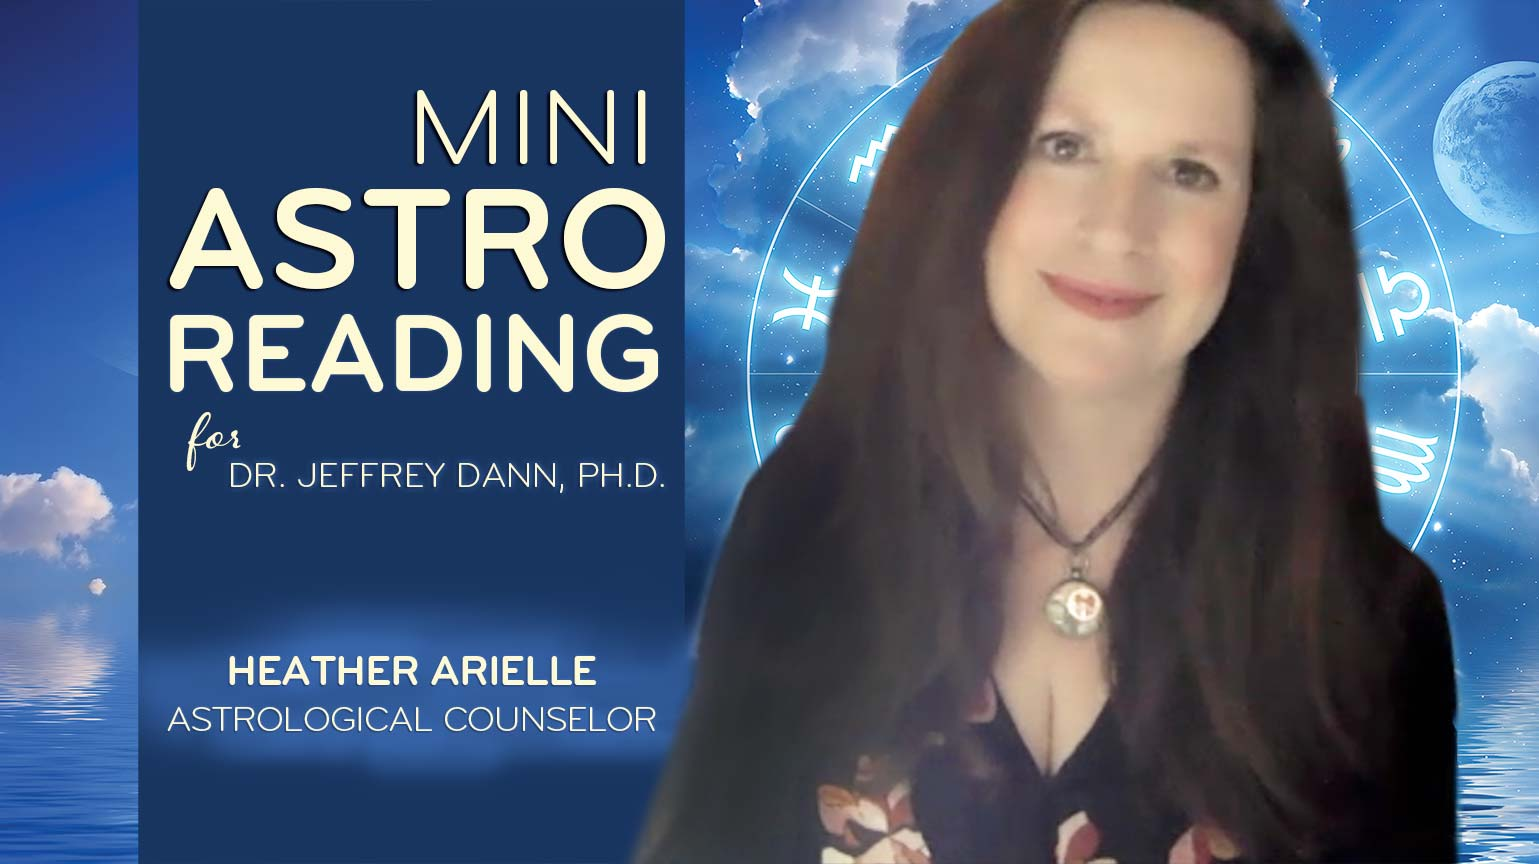 Mini Astro Reading with Heather Arielle